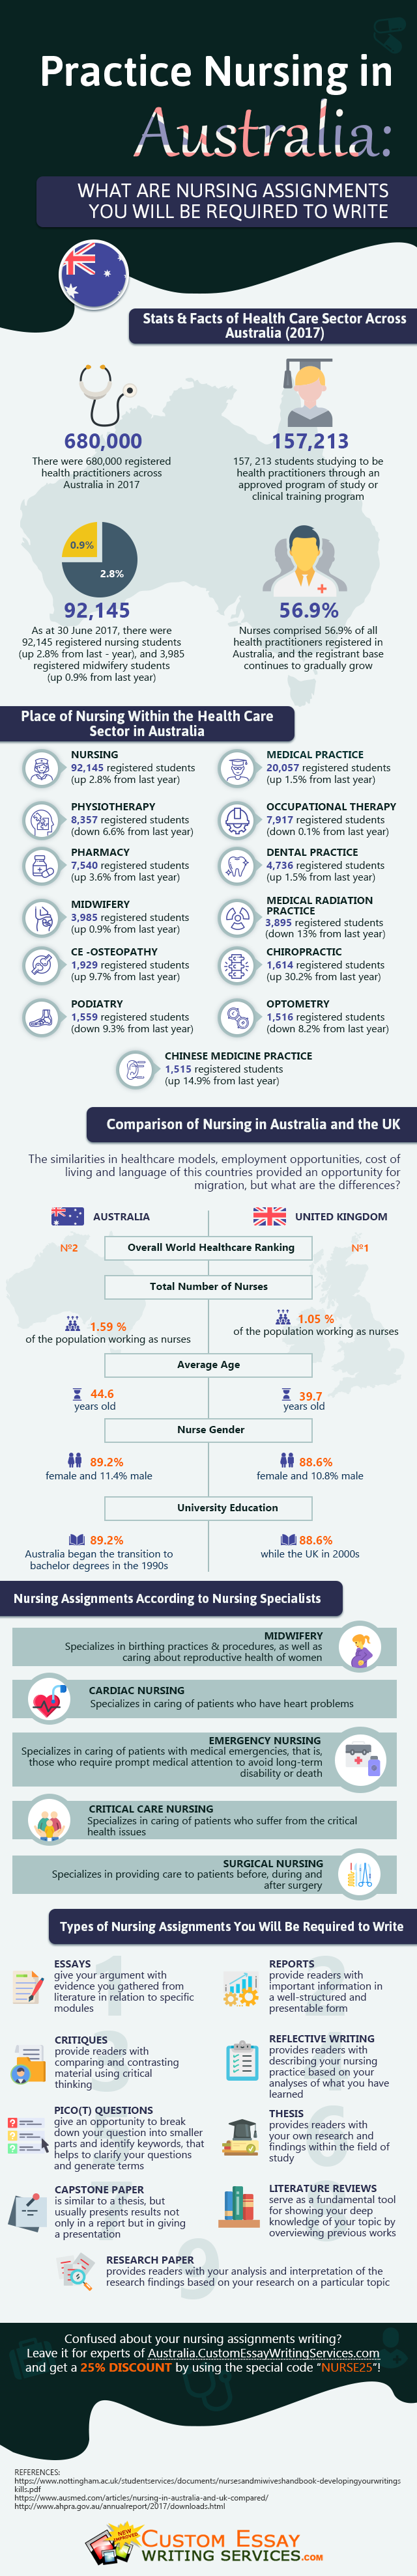 Practice Nursing in Australia: Nursing Assignments You Will Be Required to Write